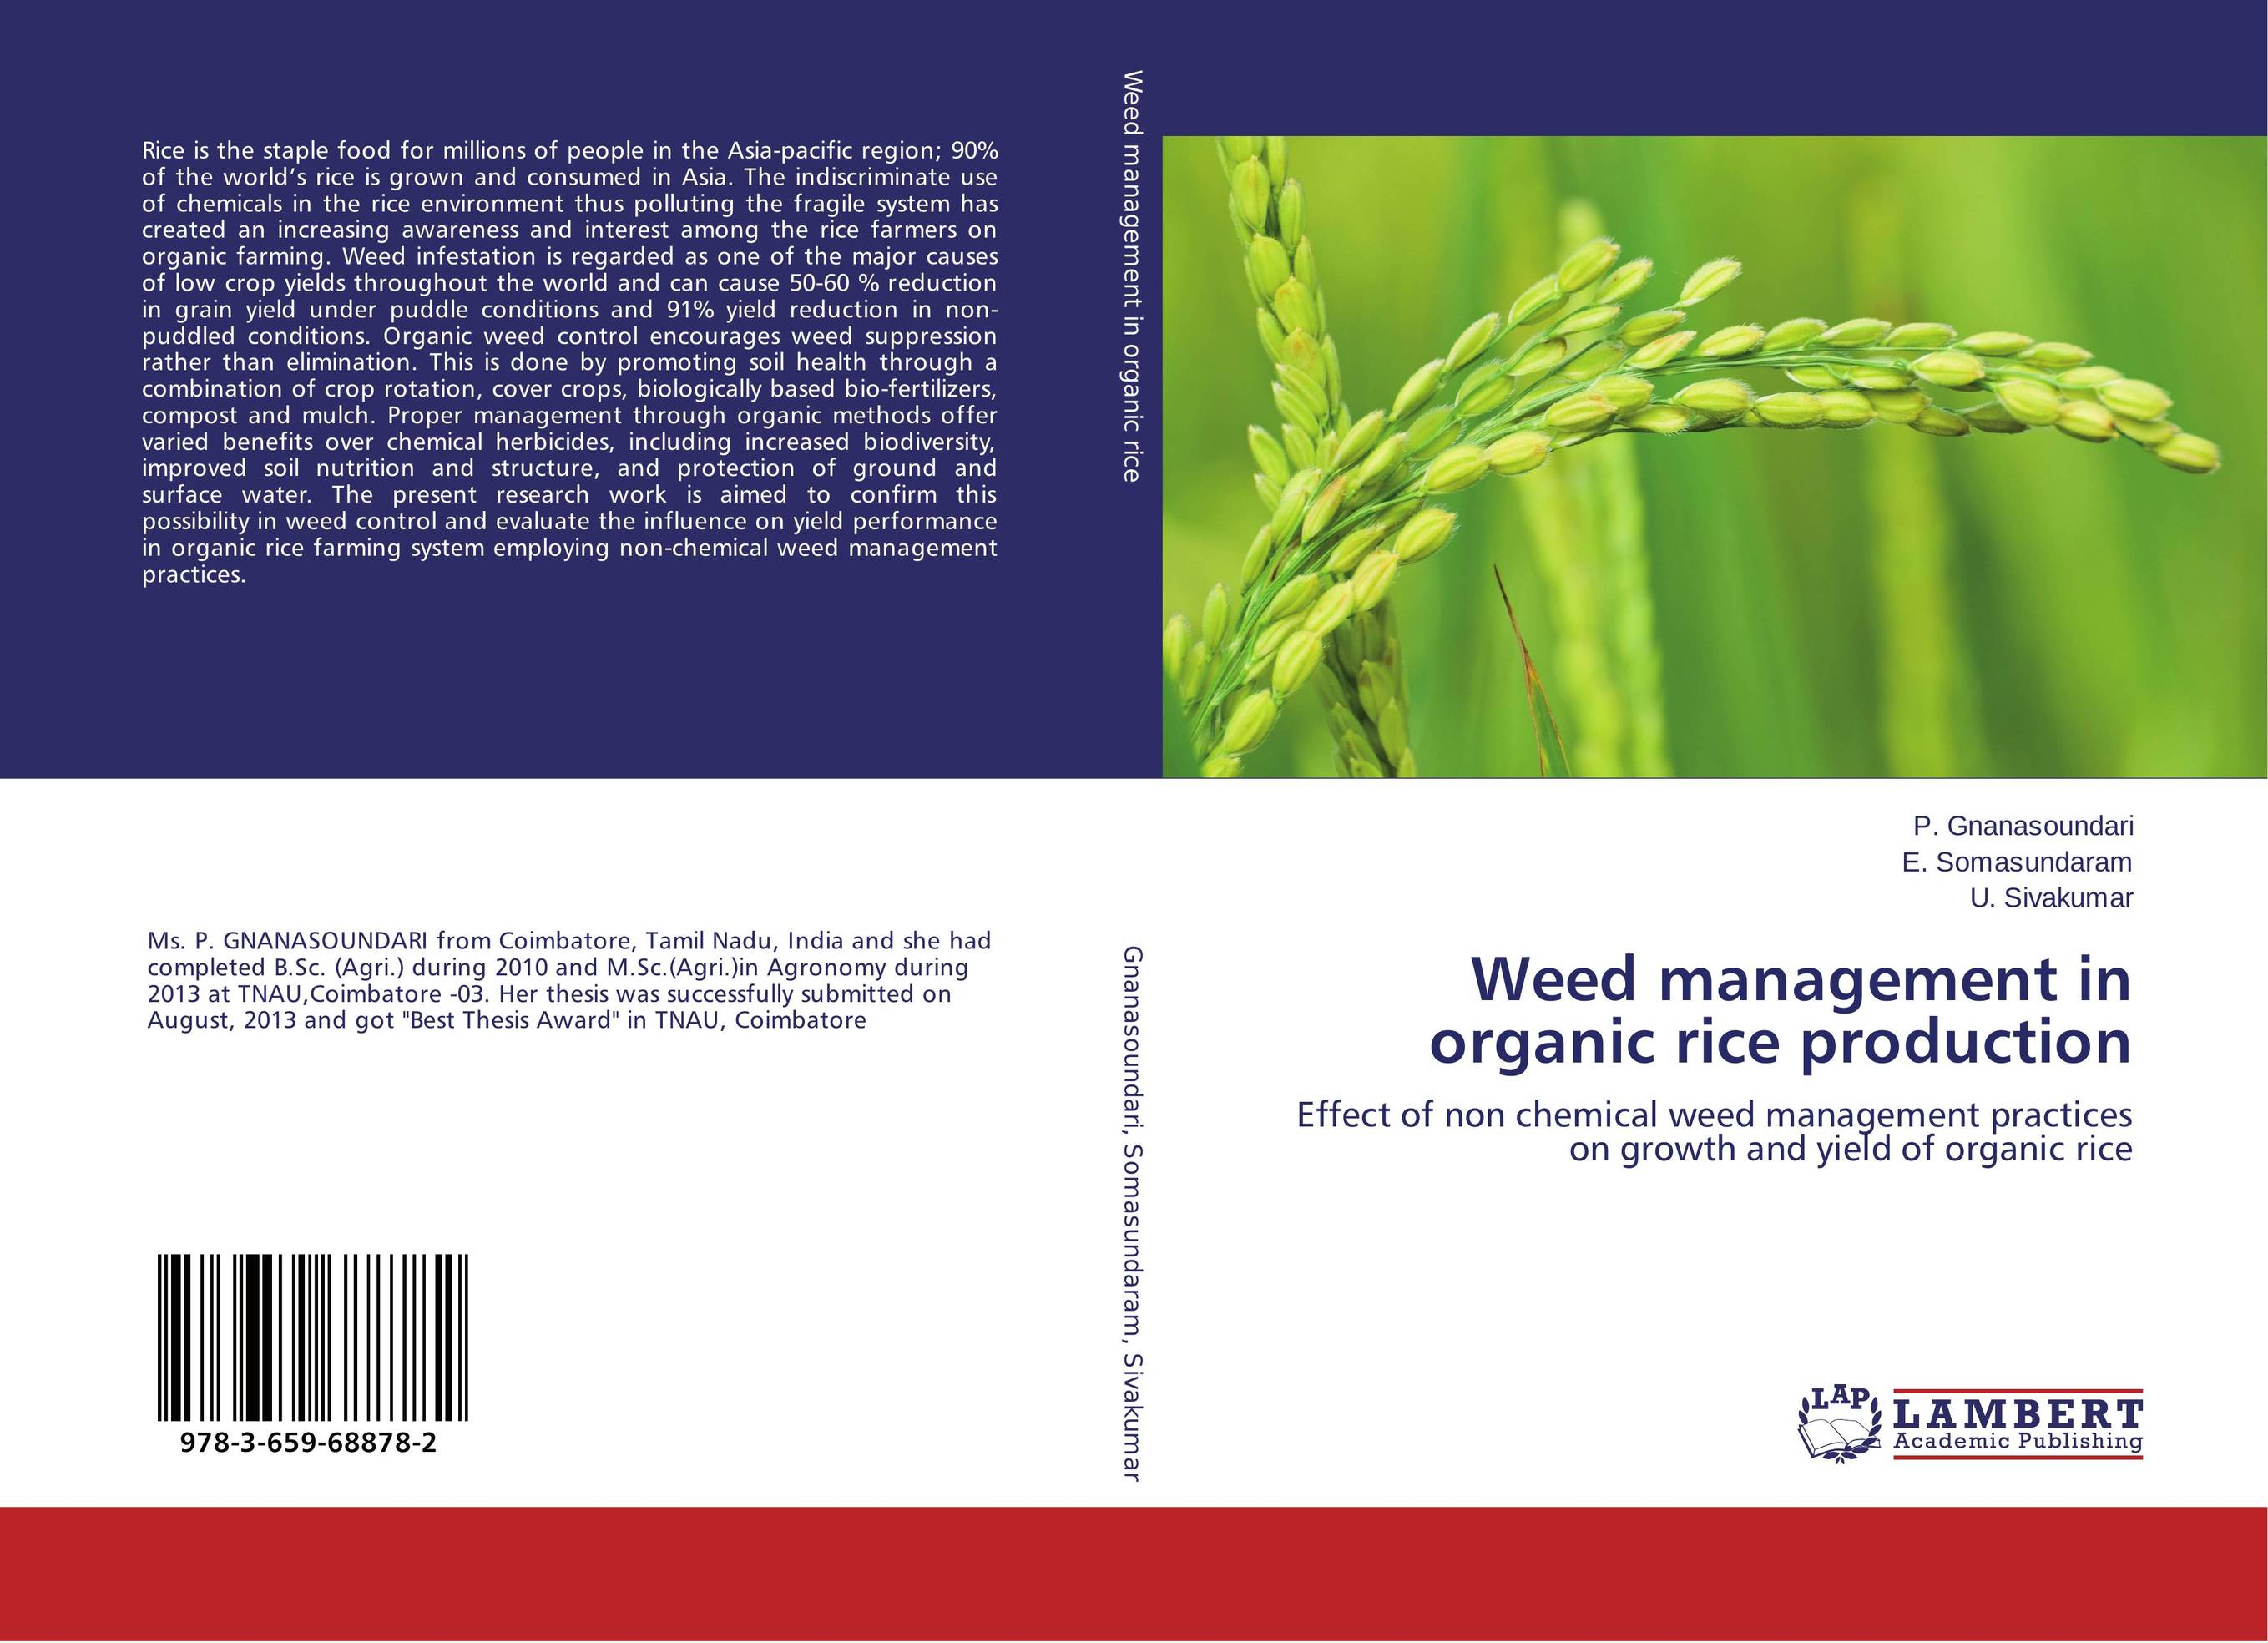 Weed management in organic rice production weed management in organic rice production